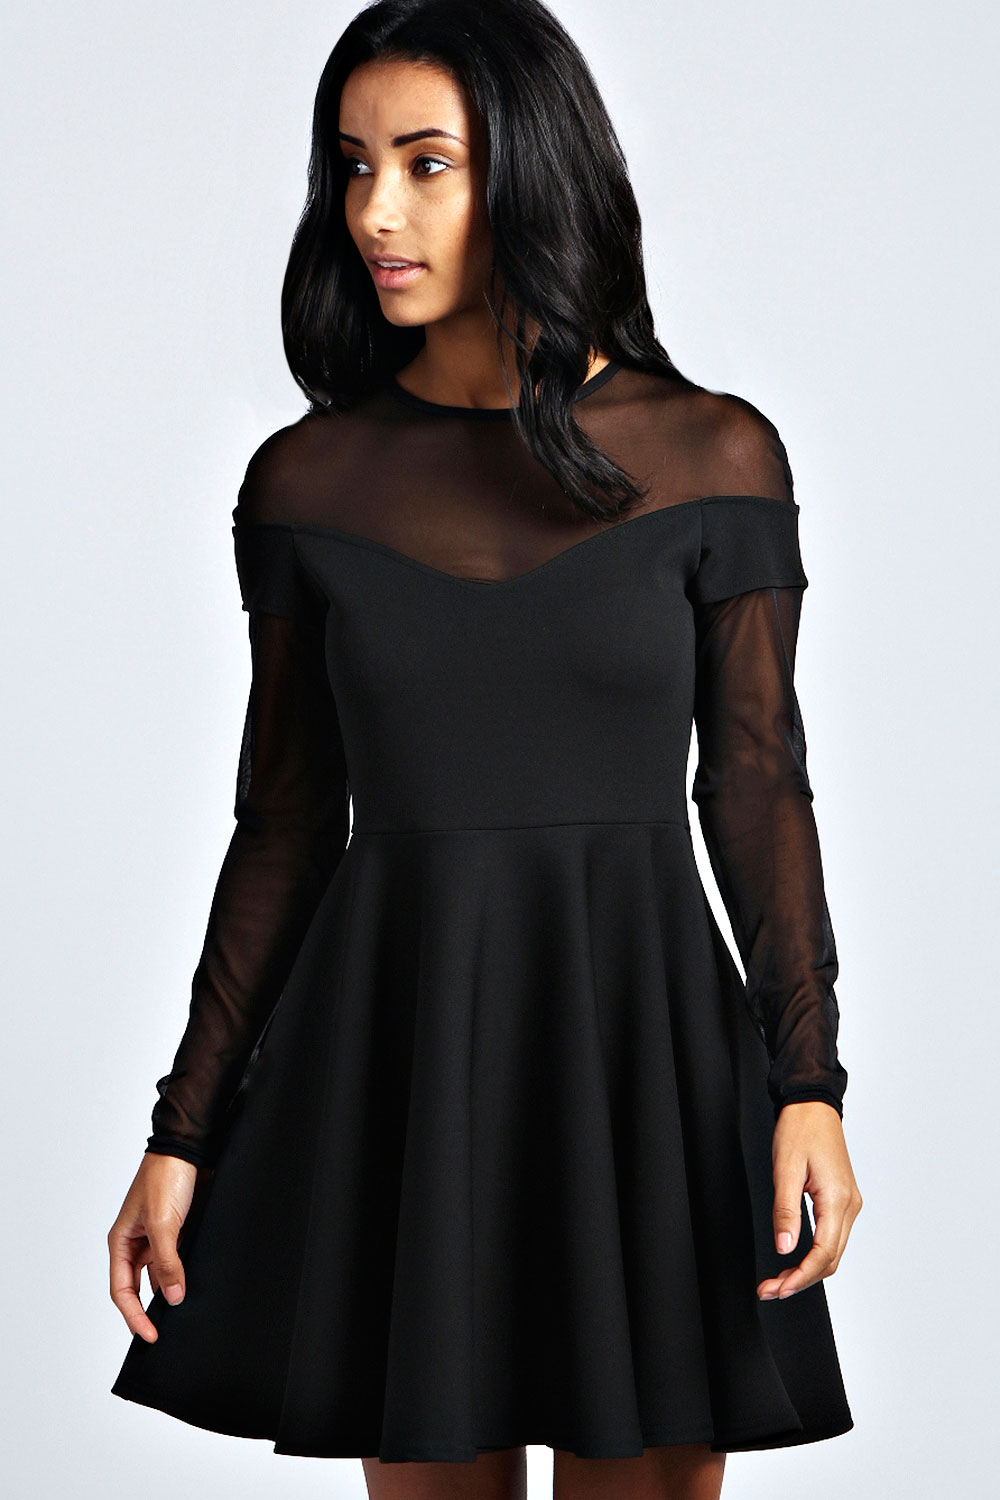 Boohoo-Womens-Layla-Hip-Length-Long-Sleeve-Sweetheart-Neck-Mesh-Skater-Dress